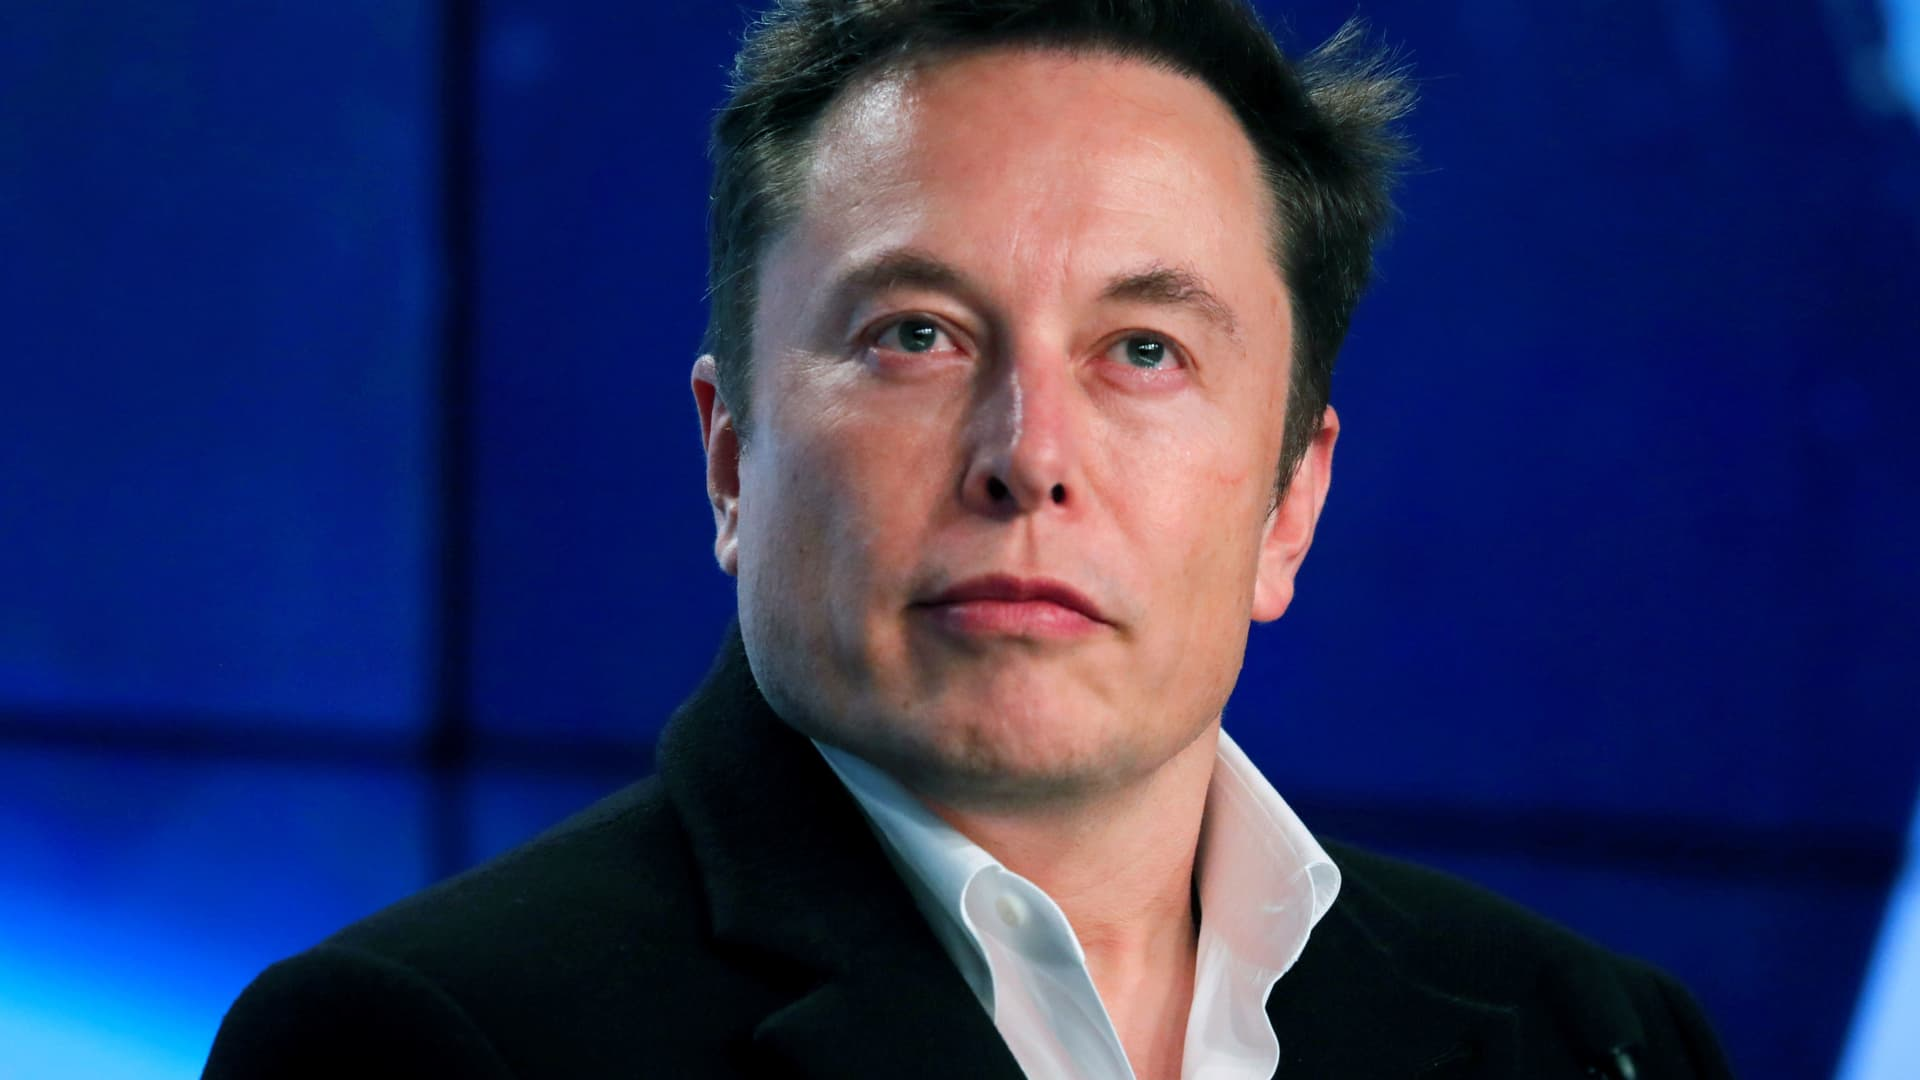 SpaceX founder Elon Musk looks on at a post-launch news conference after the SpaceX Falcon 9 rocket, carrying the Crew Dragon spacecraft, lifted off on an uncrewed test flight to the International Space Station from the Kennedy Space Center in Cape Canaveral, Florida, March 2, 2019.